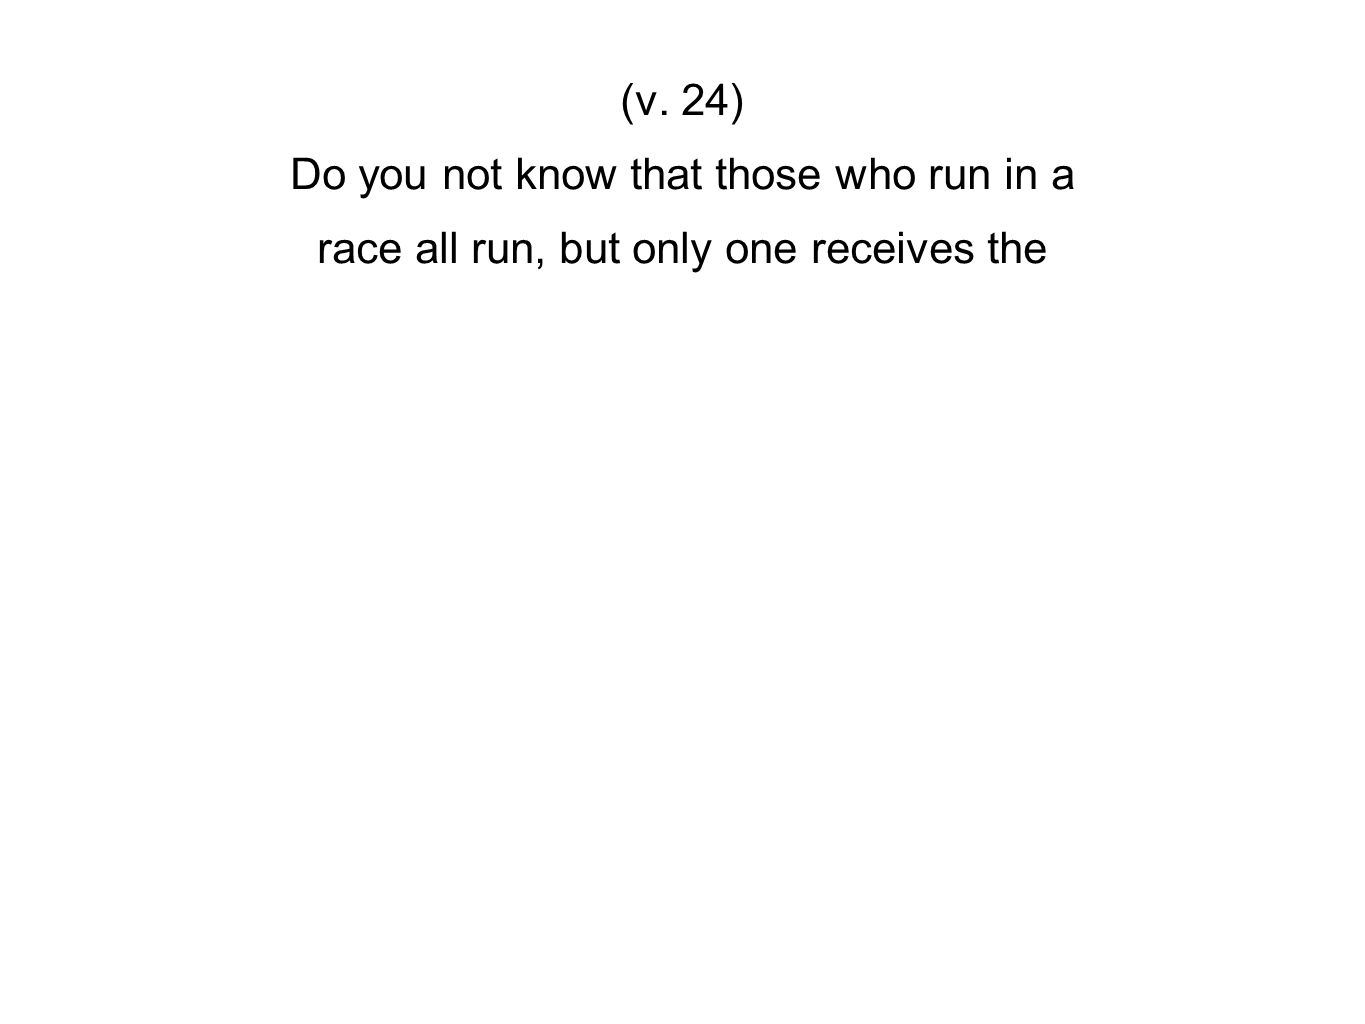 (v. 24) Do you not know that those who run in a race all run, but only one receives the